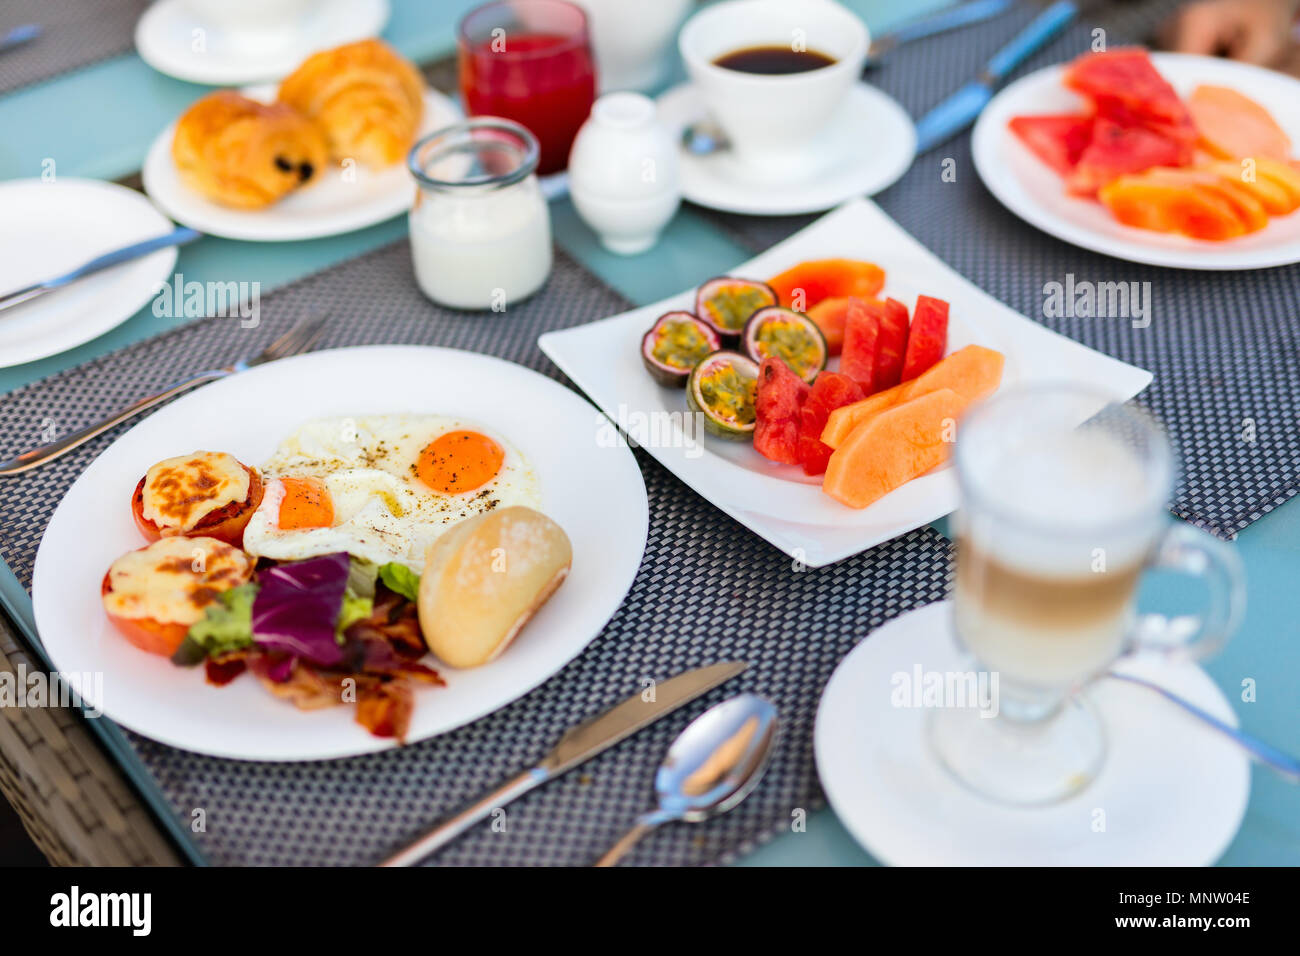 Delicious breakfast with fried eggs,  bacon,  vegetables and fruits - Stock Image